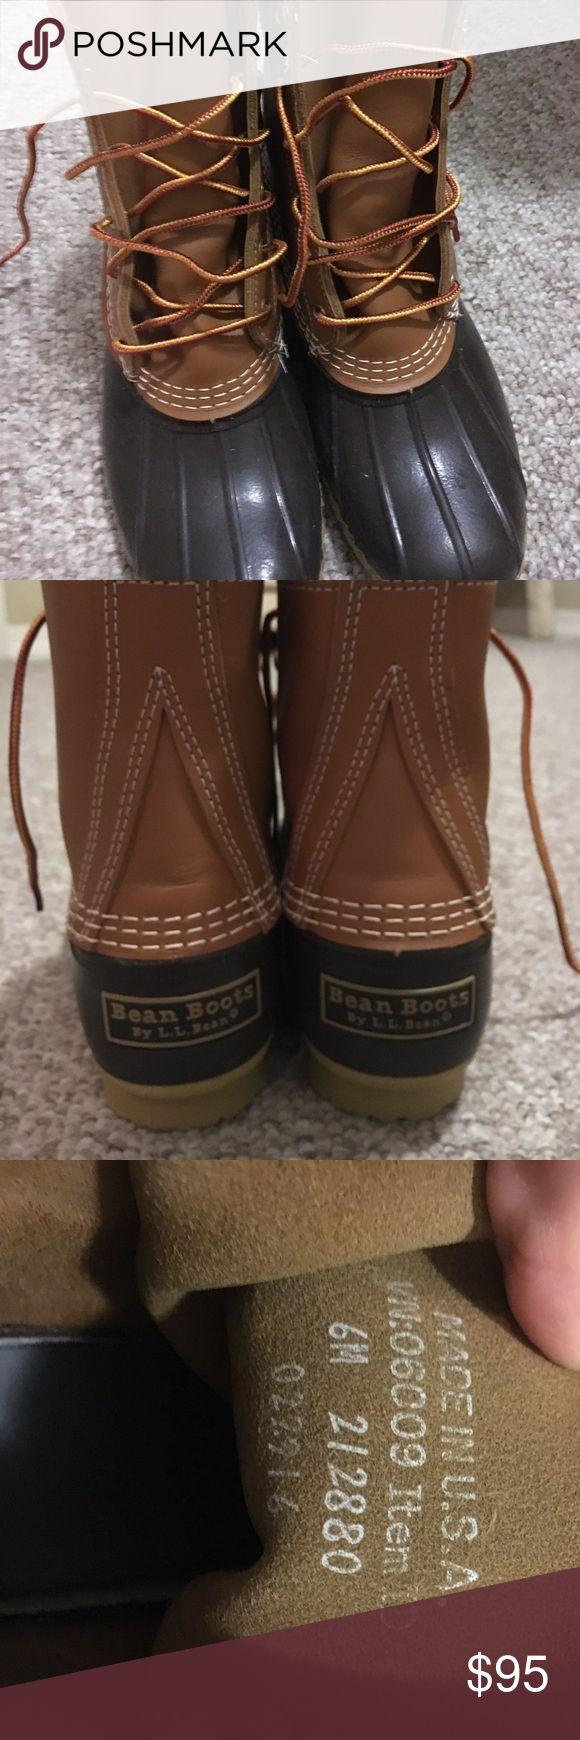 """LL Bean Boots Classic 8"""" LL Bean Boots. Color: Tan/Brown. Got these as a gift and they just aren't my style. Brand new, never worn. L.L. Bean Shoes Winter & Rain Boots"""